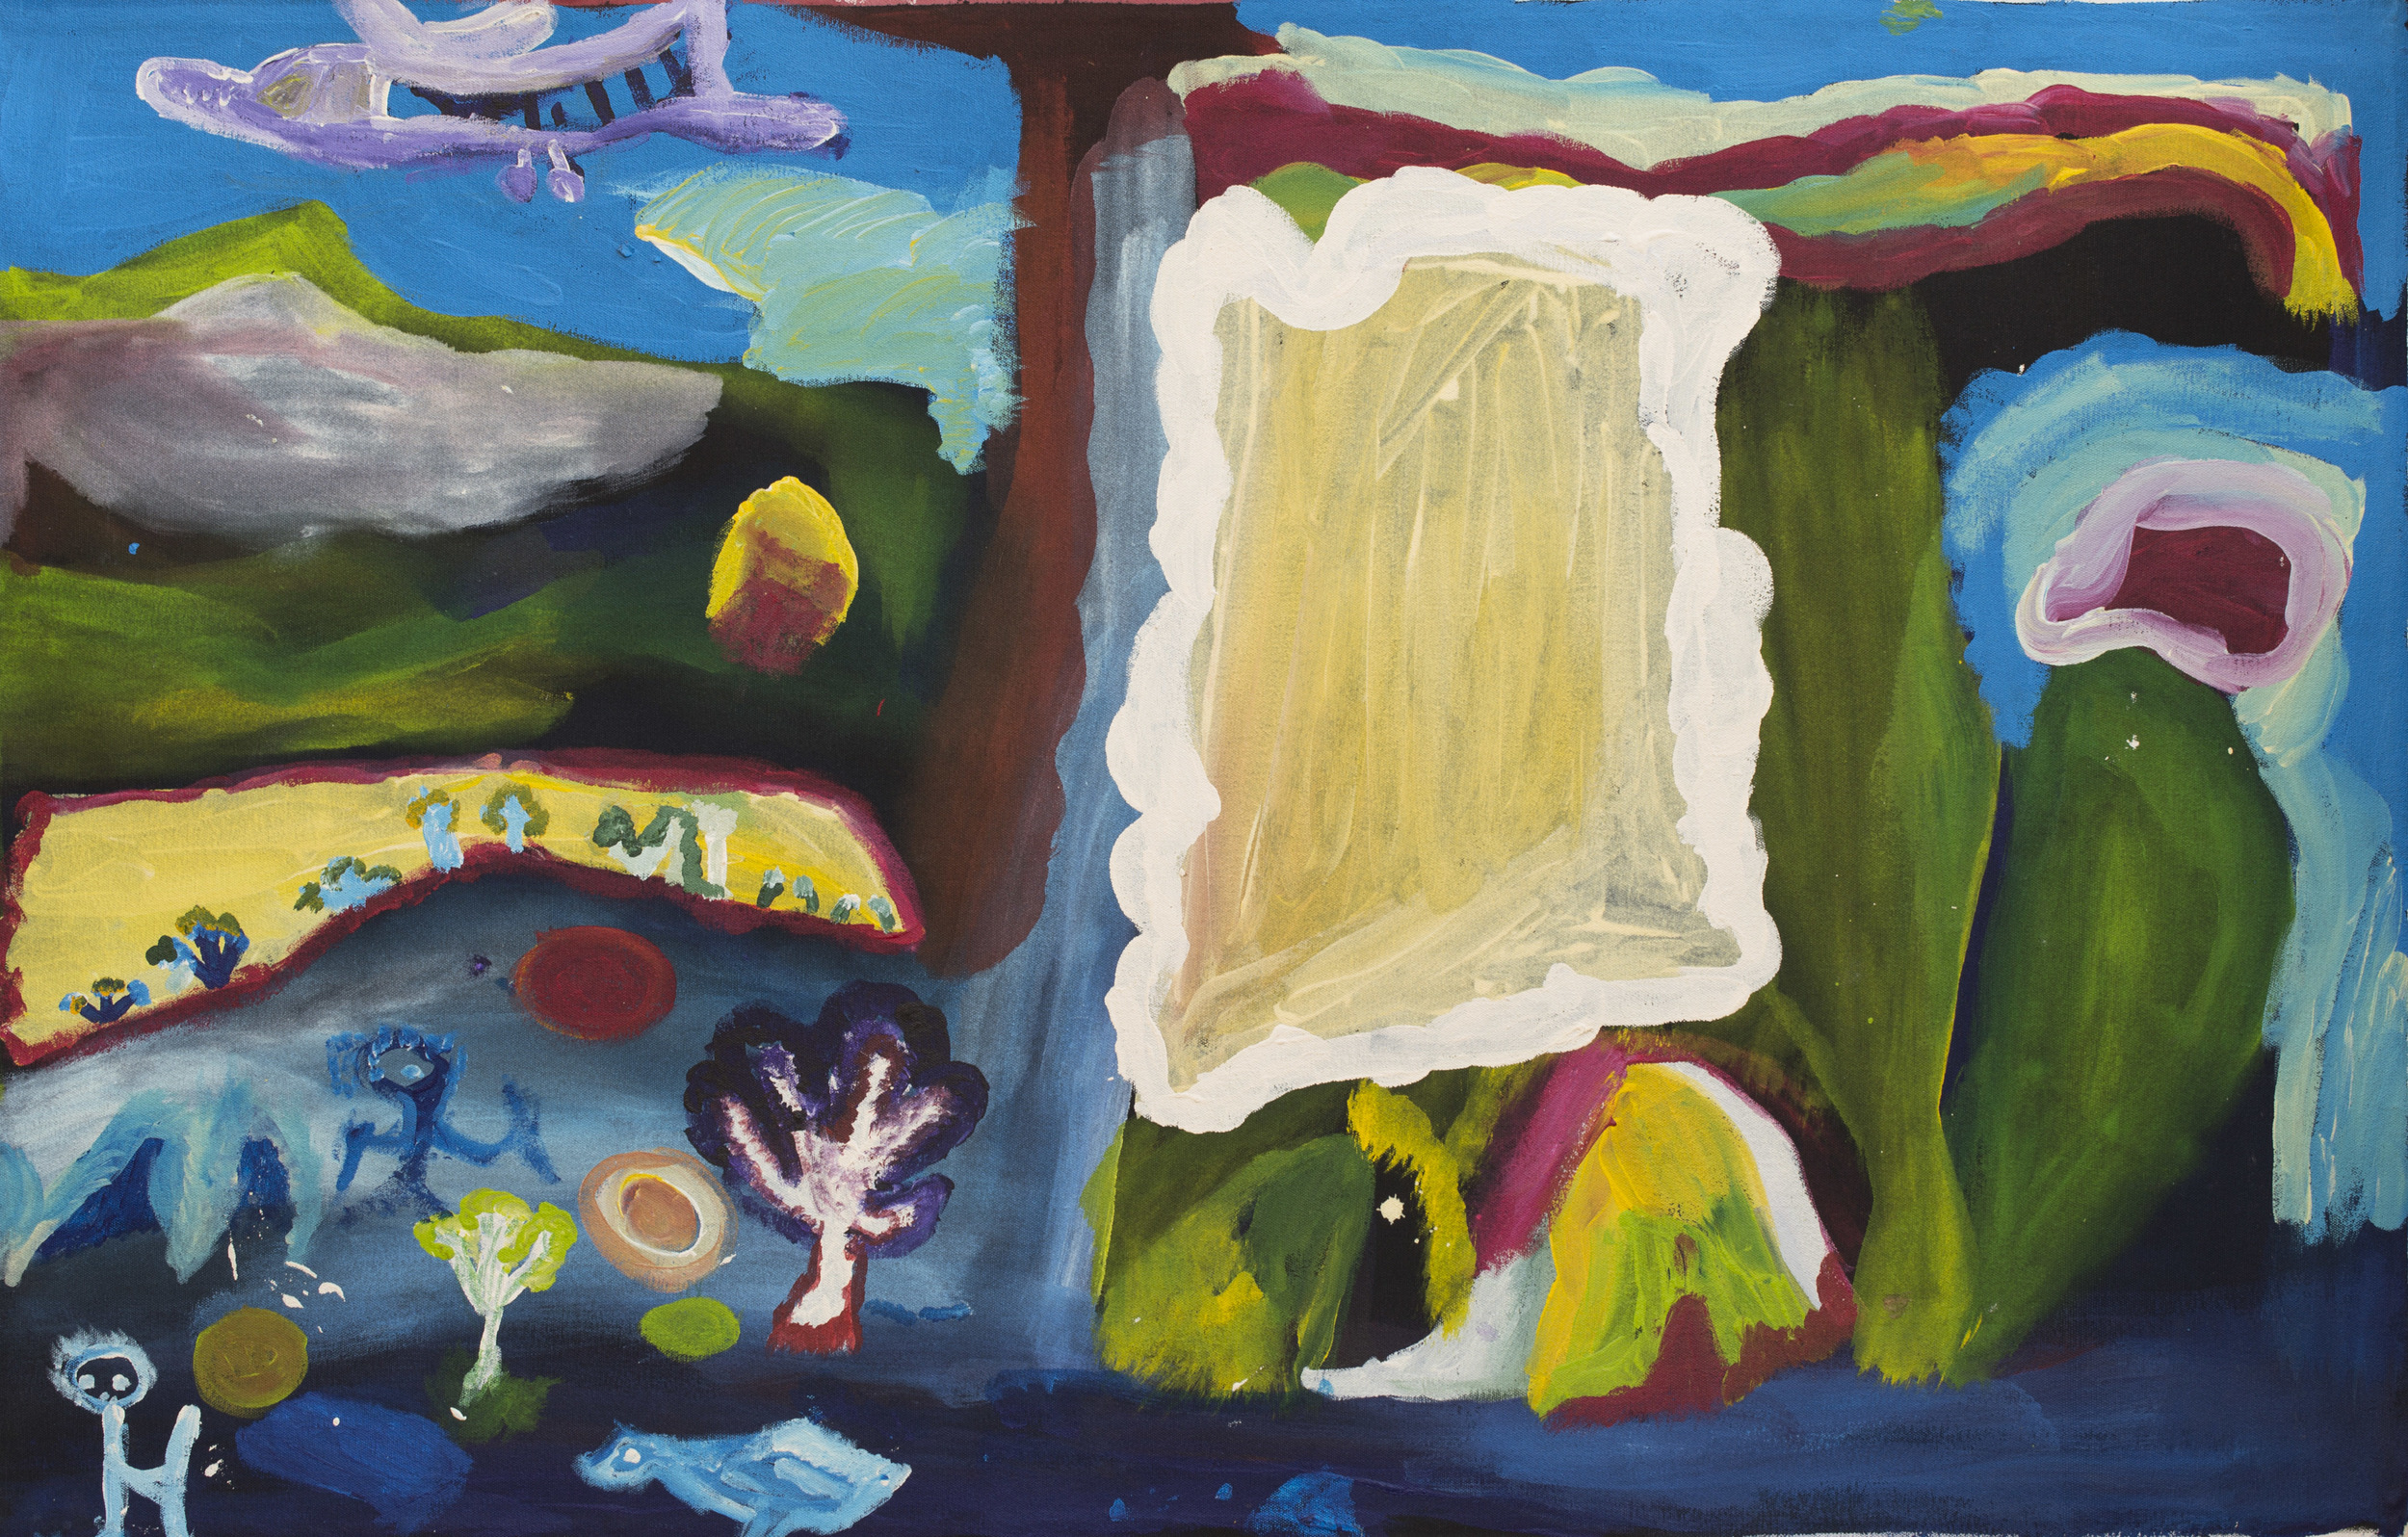 "Amy French  Hunting and a plane in pujiman (bushman days)  Acrylic on canvas 30"" x 48"" (76 x 122 cm) Martumili Artists Catalog #14-101   EMAIL INQUIRY"